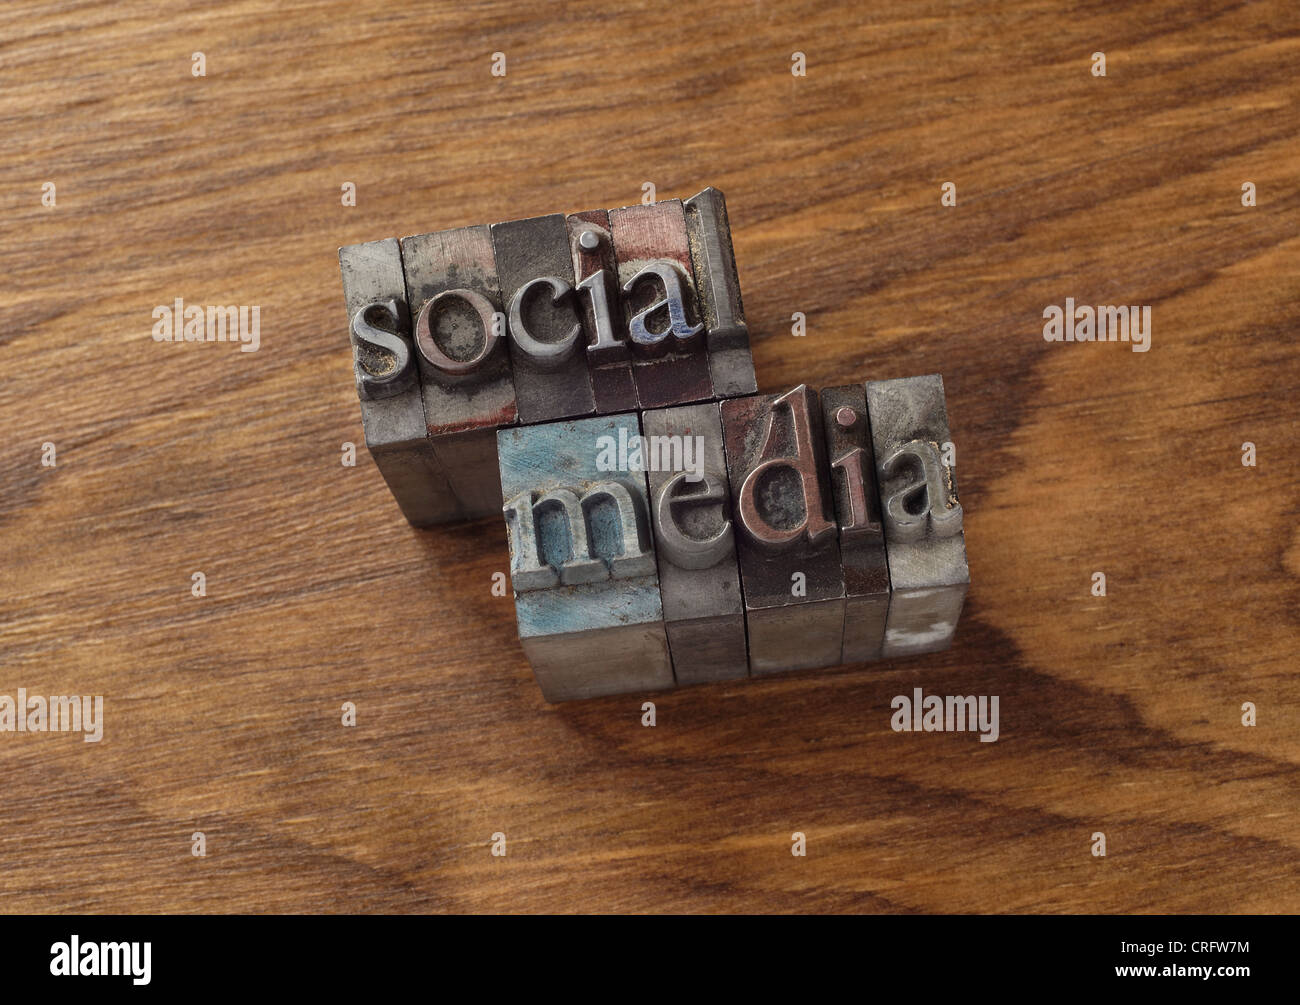 Lead type spelling 'social media' - Stock Image